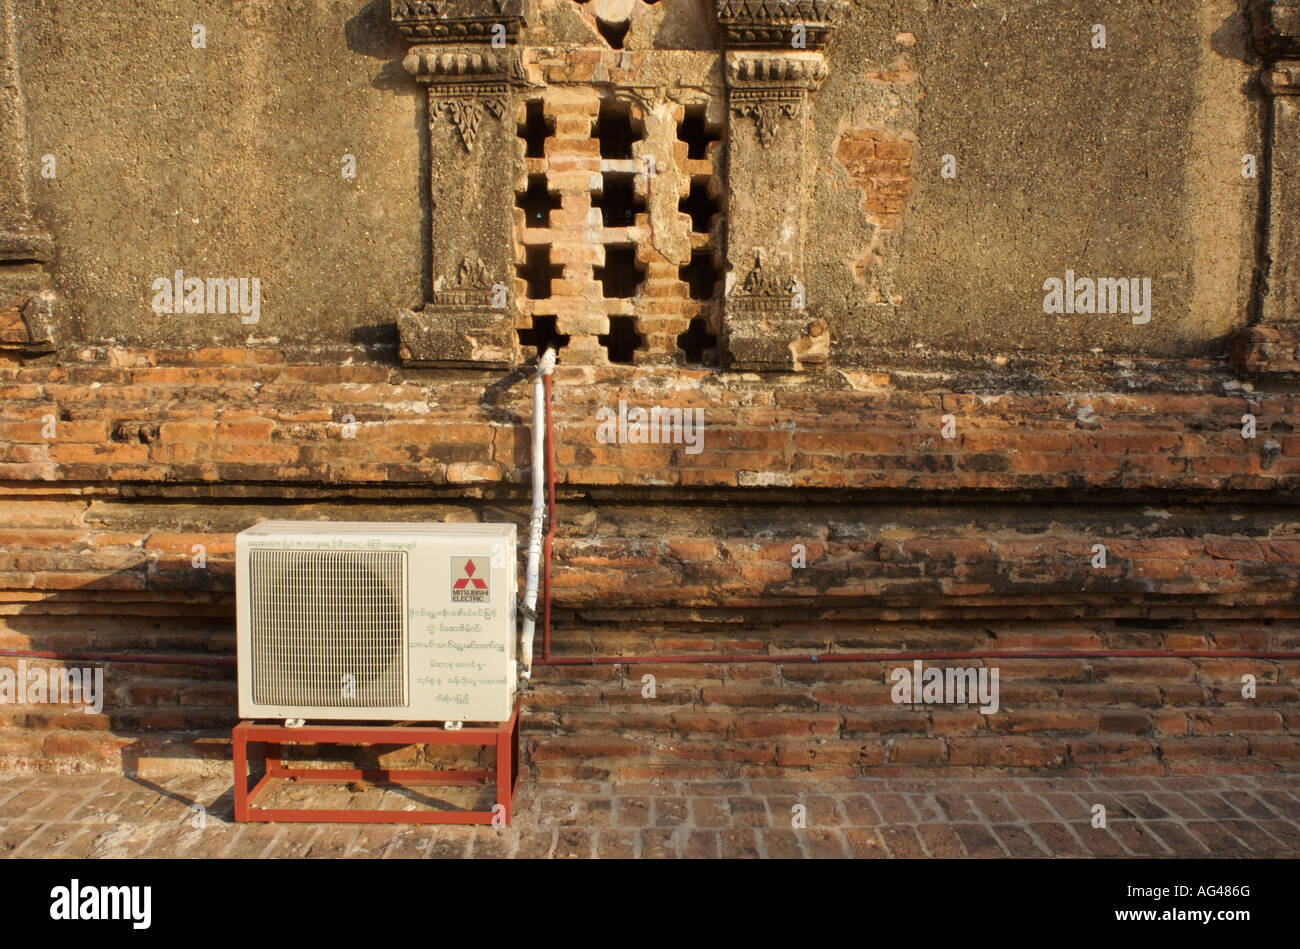 A modern air conditioning unit set up to cool a 900 year old temple in Myanmar. - Stock Image